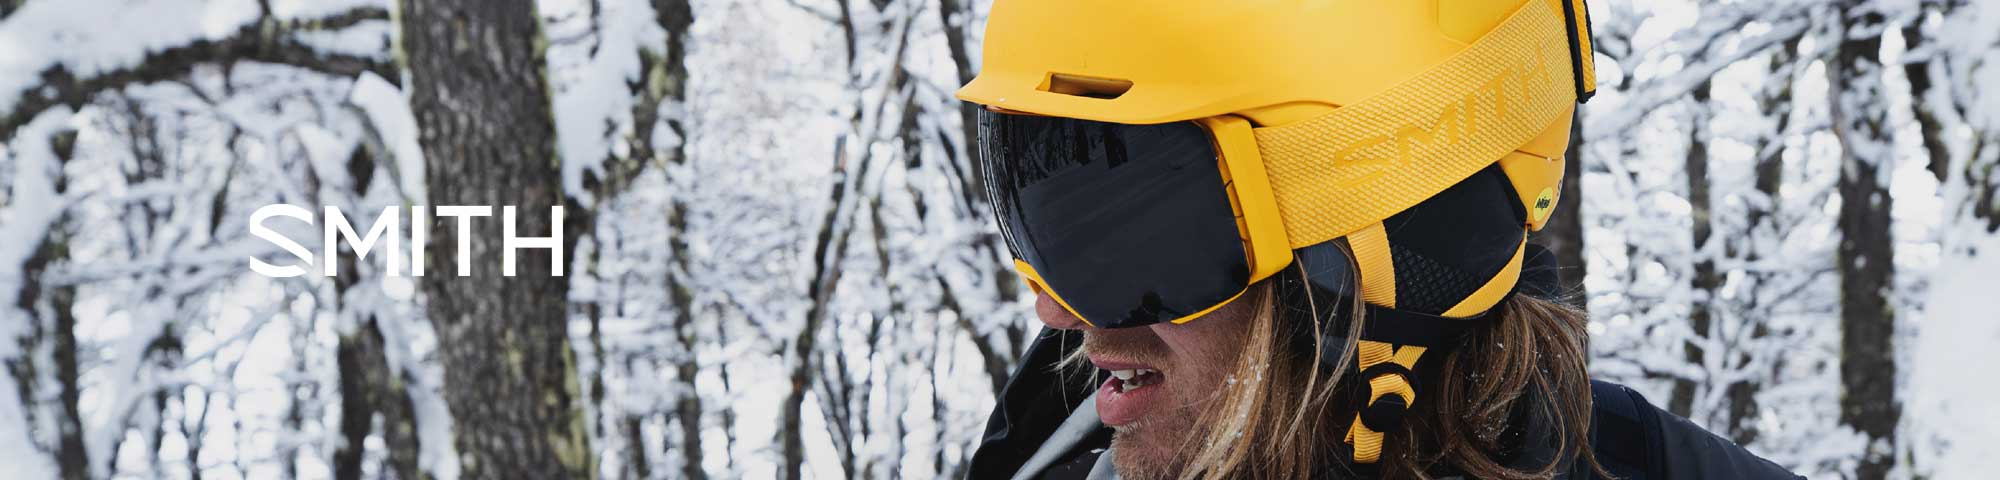 Smith Squad Prescription Ski Goggles